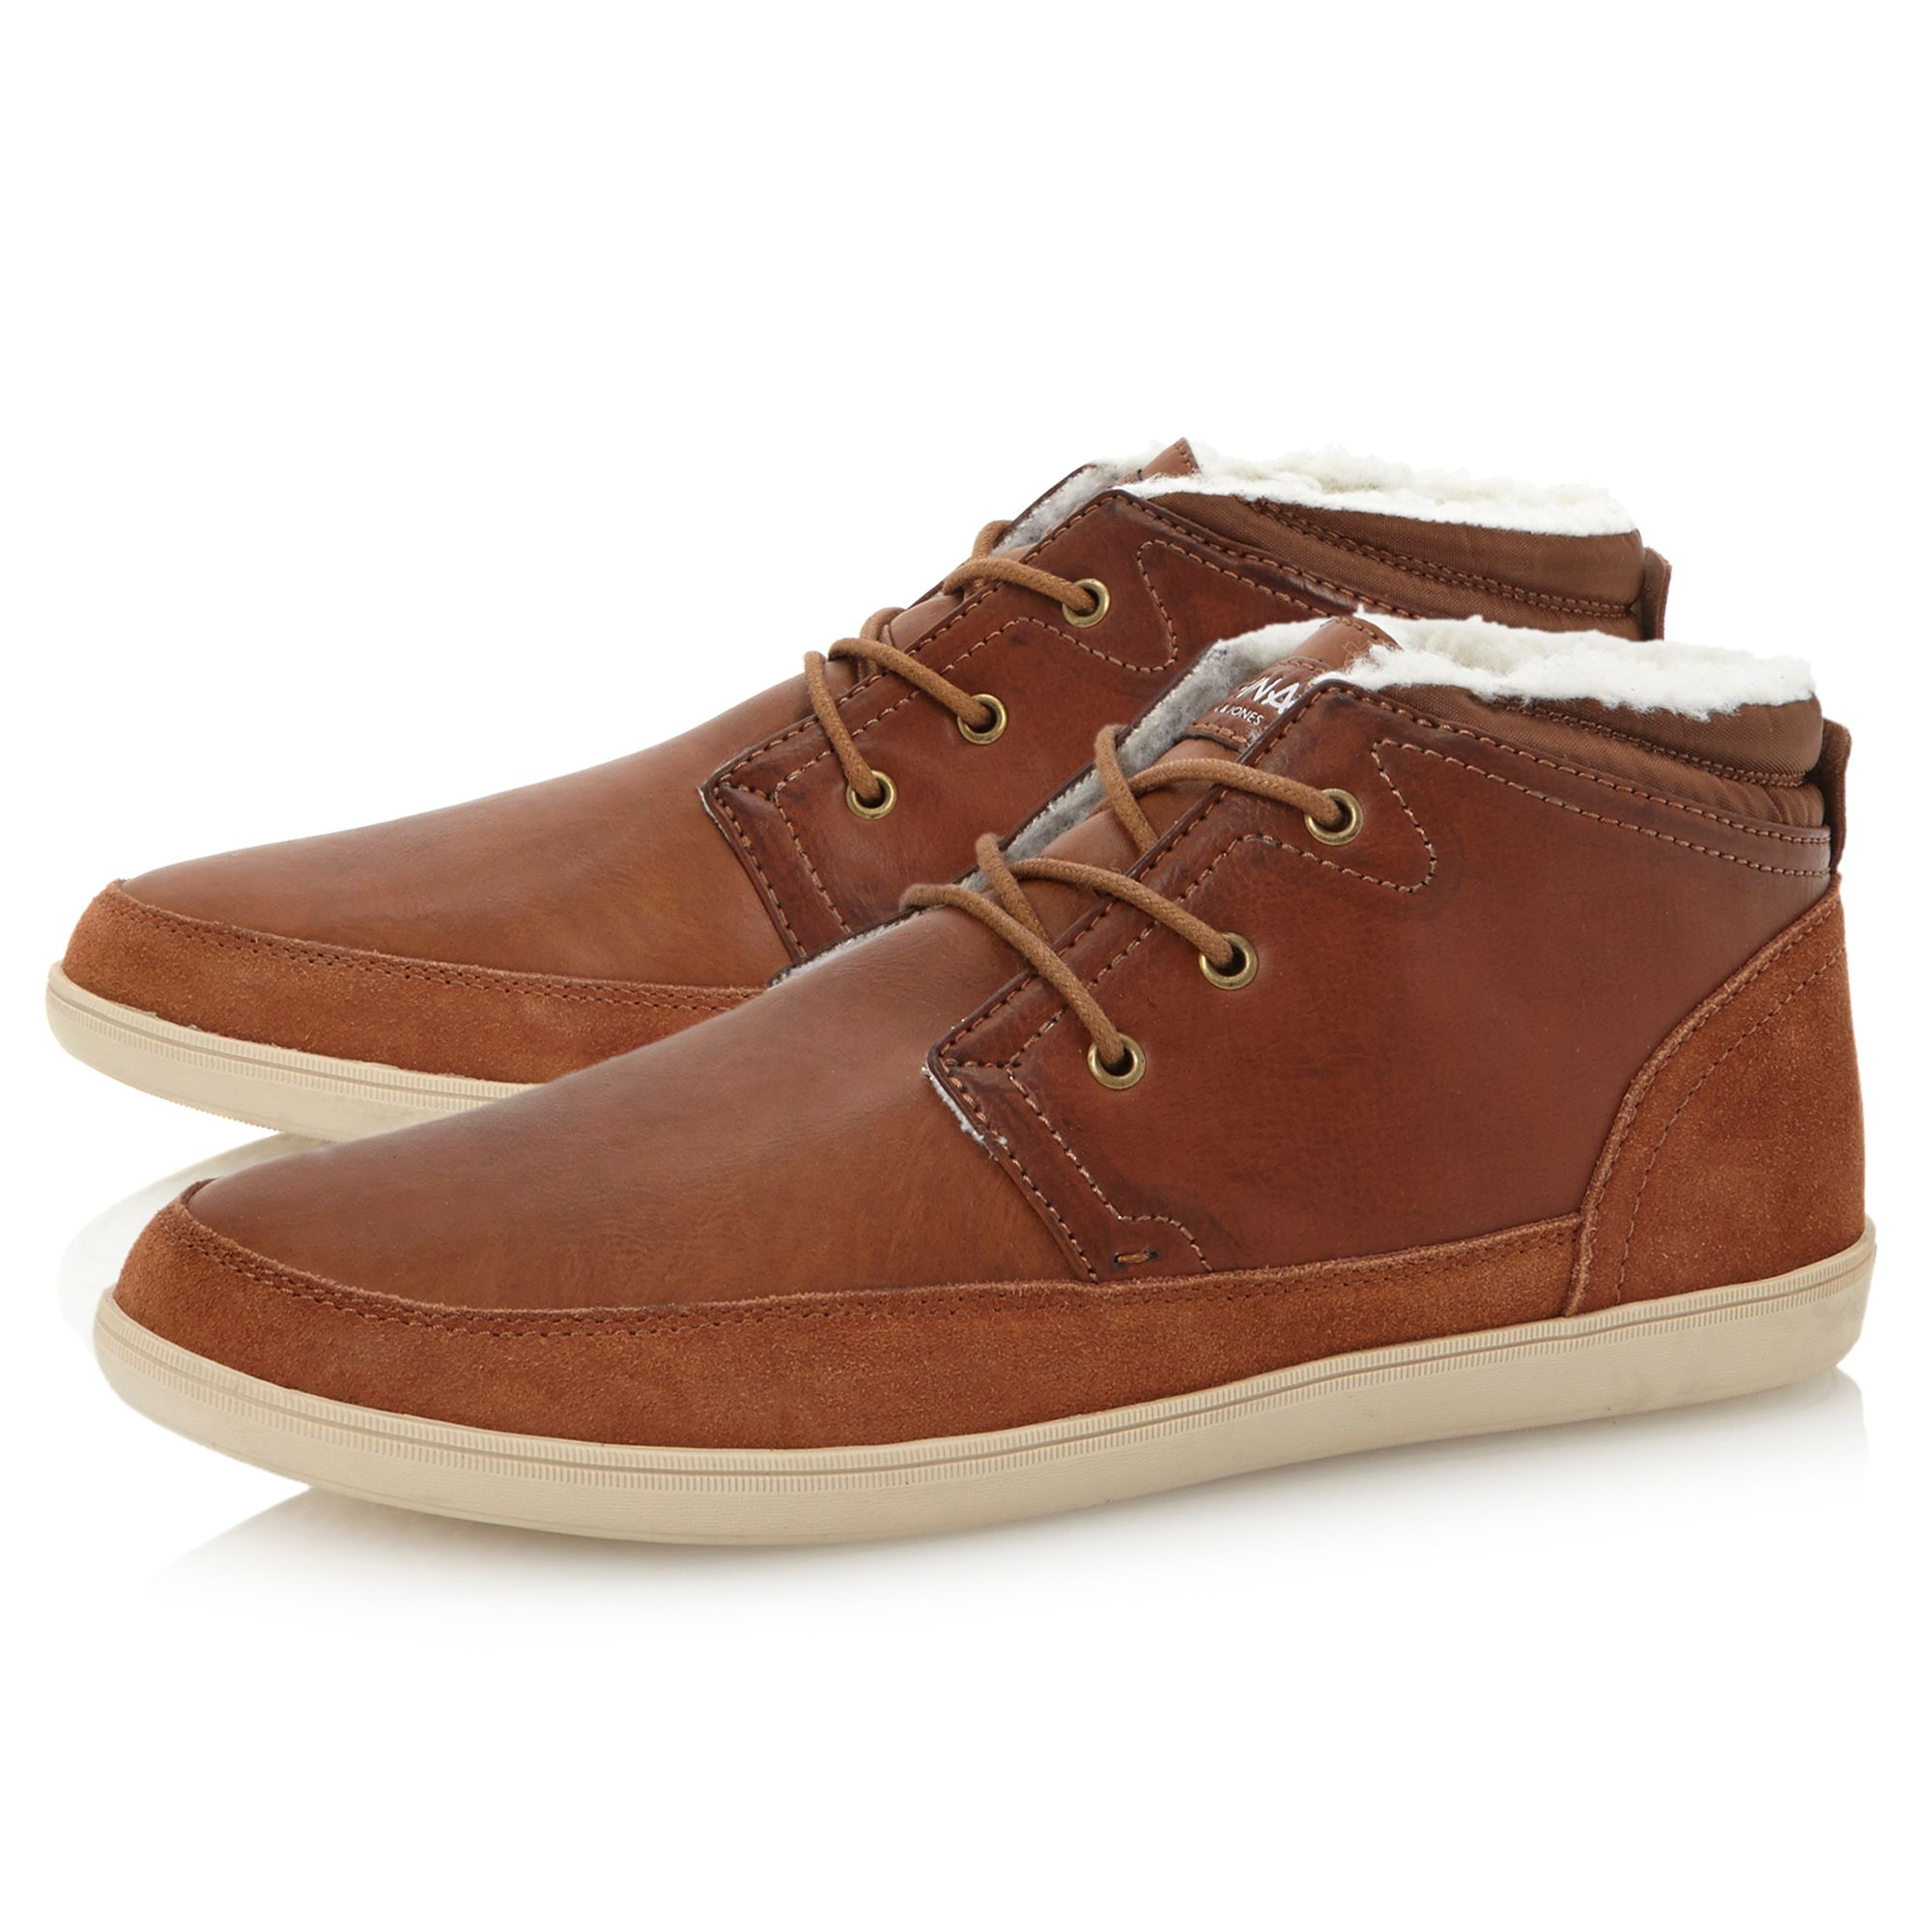 sword mid fleece lined chukka boot